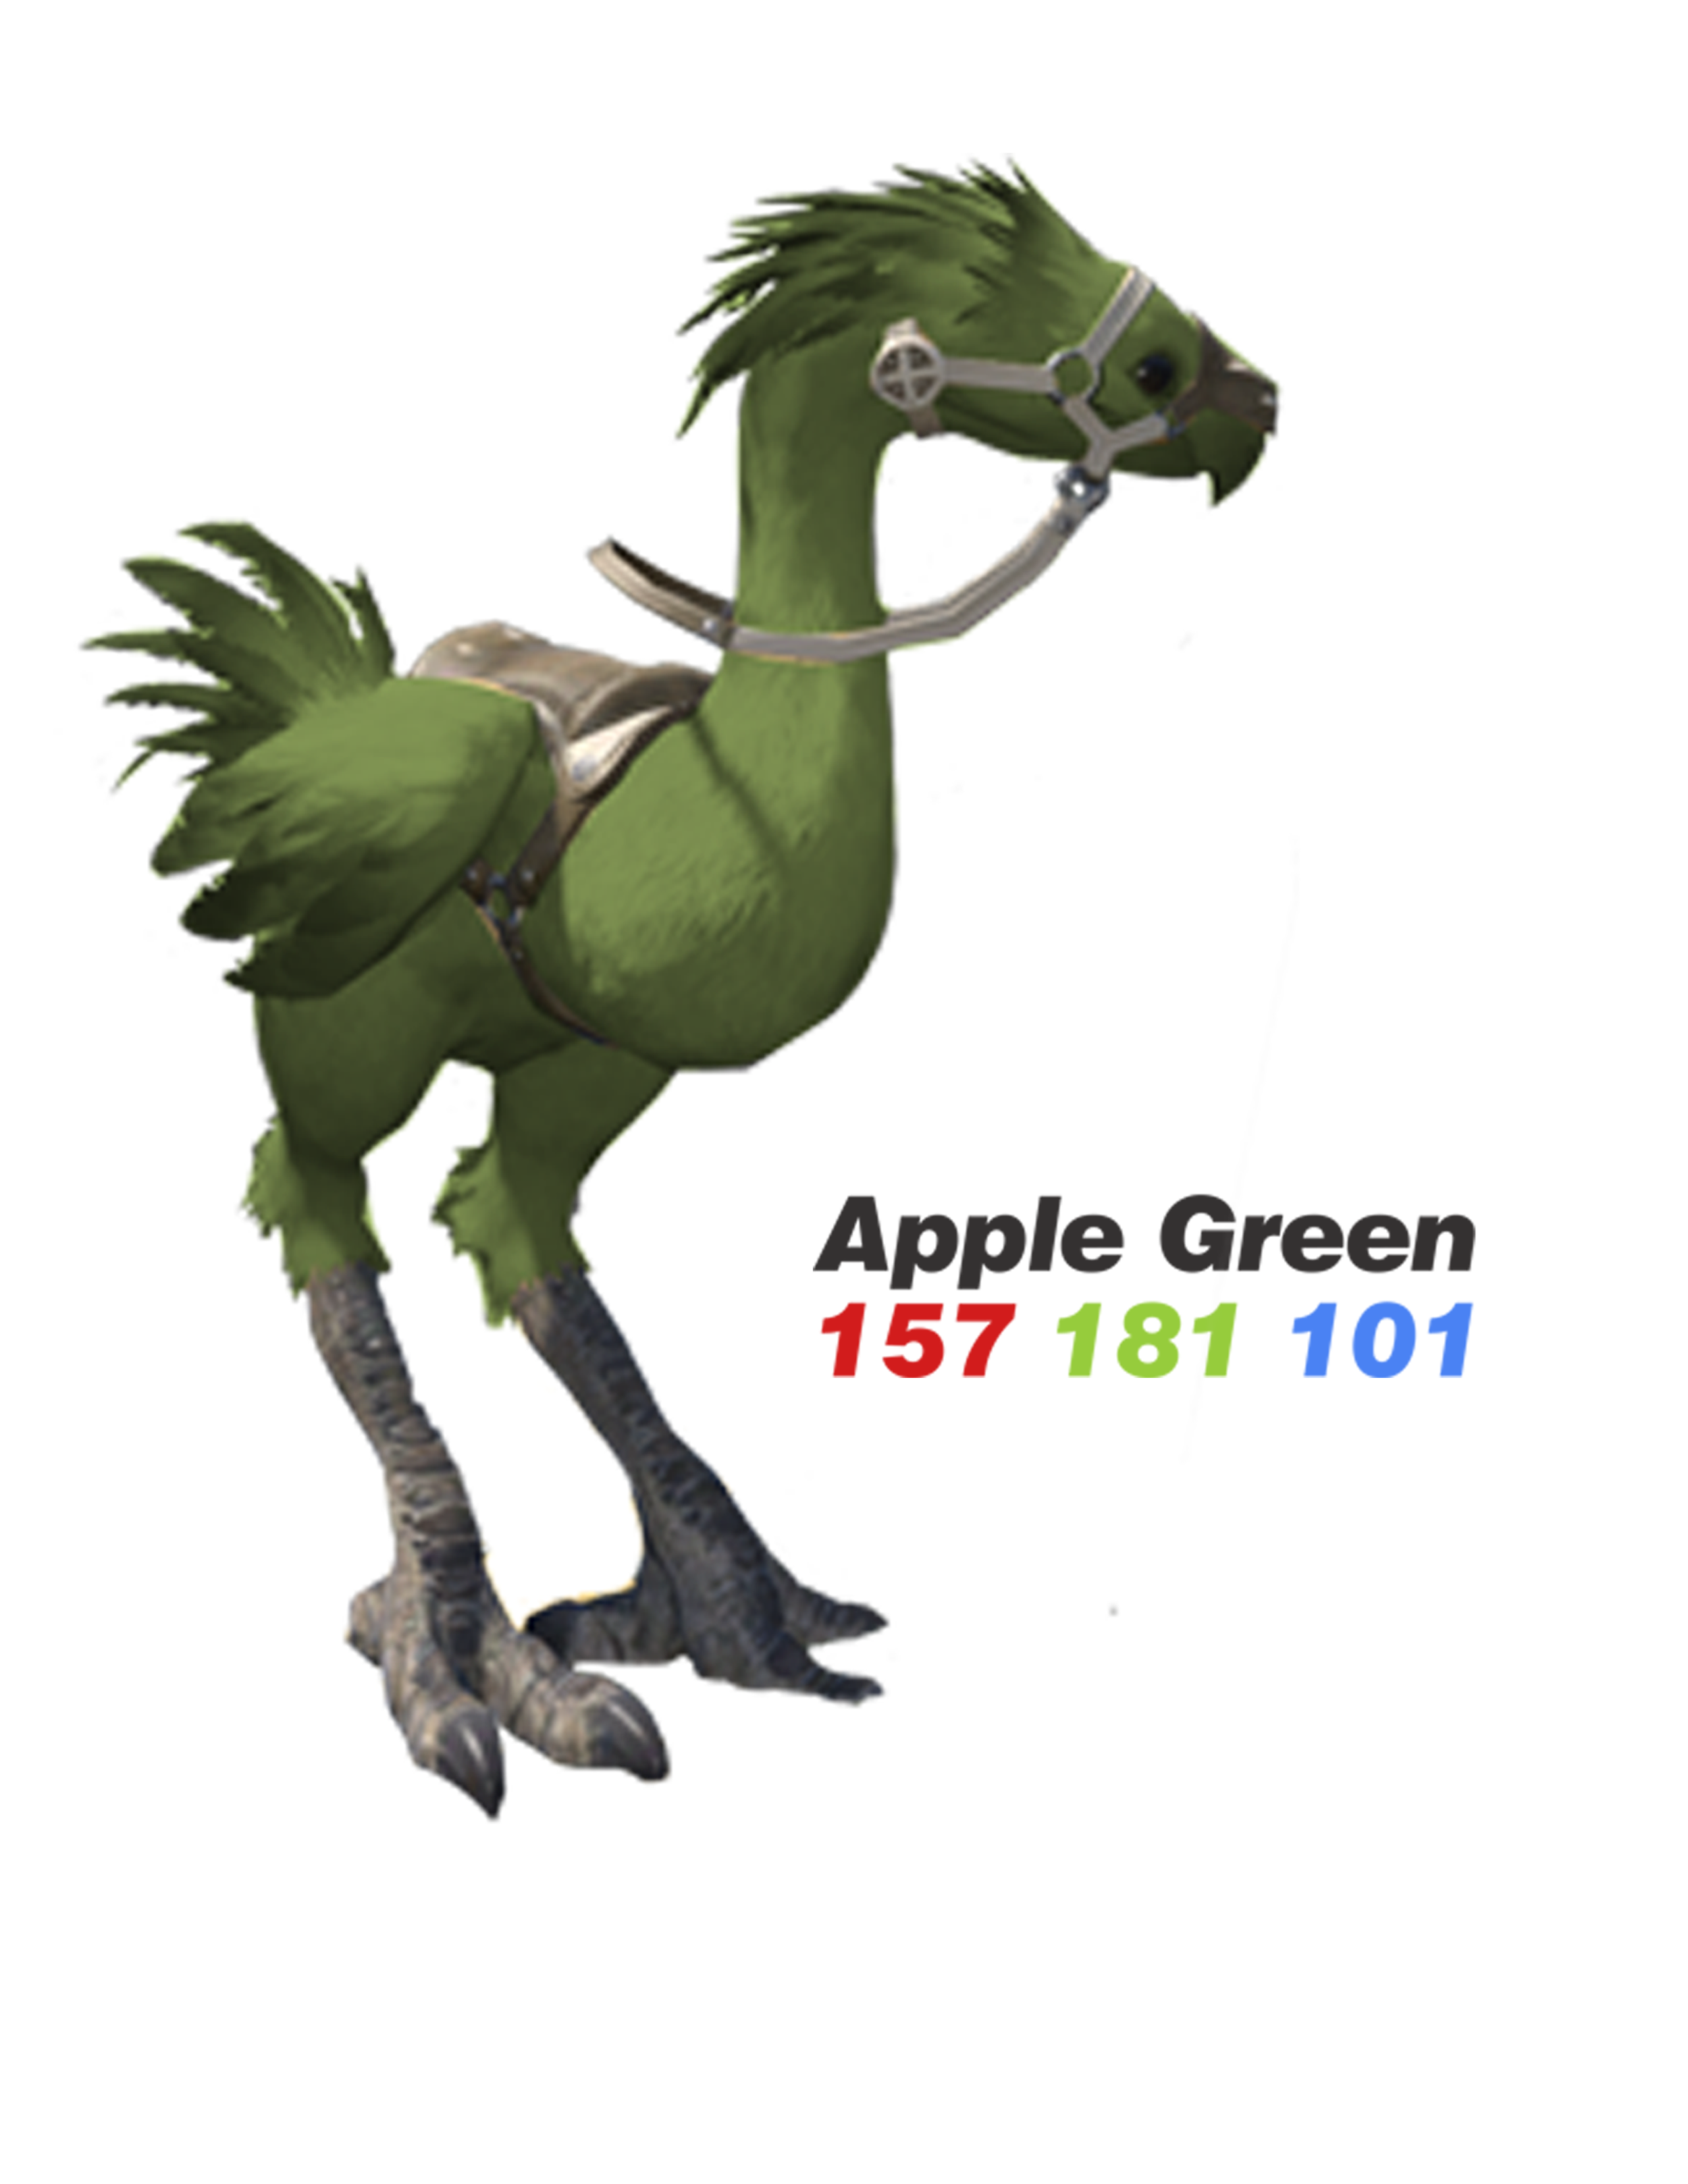 08Apple.png